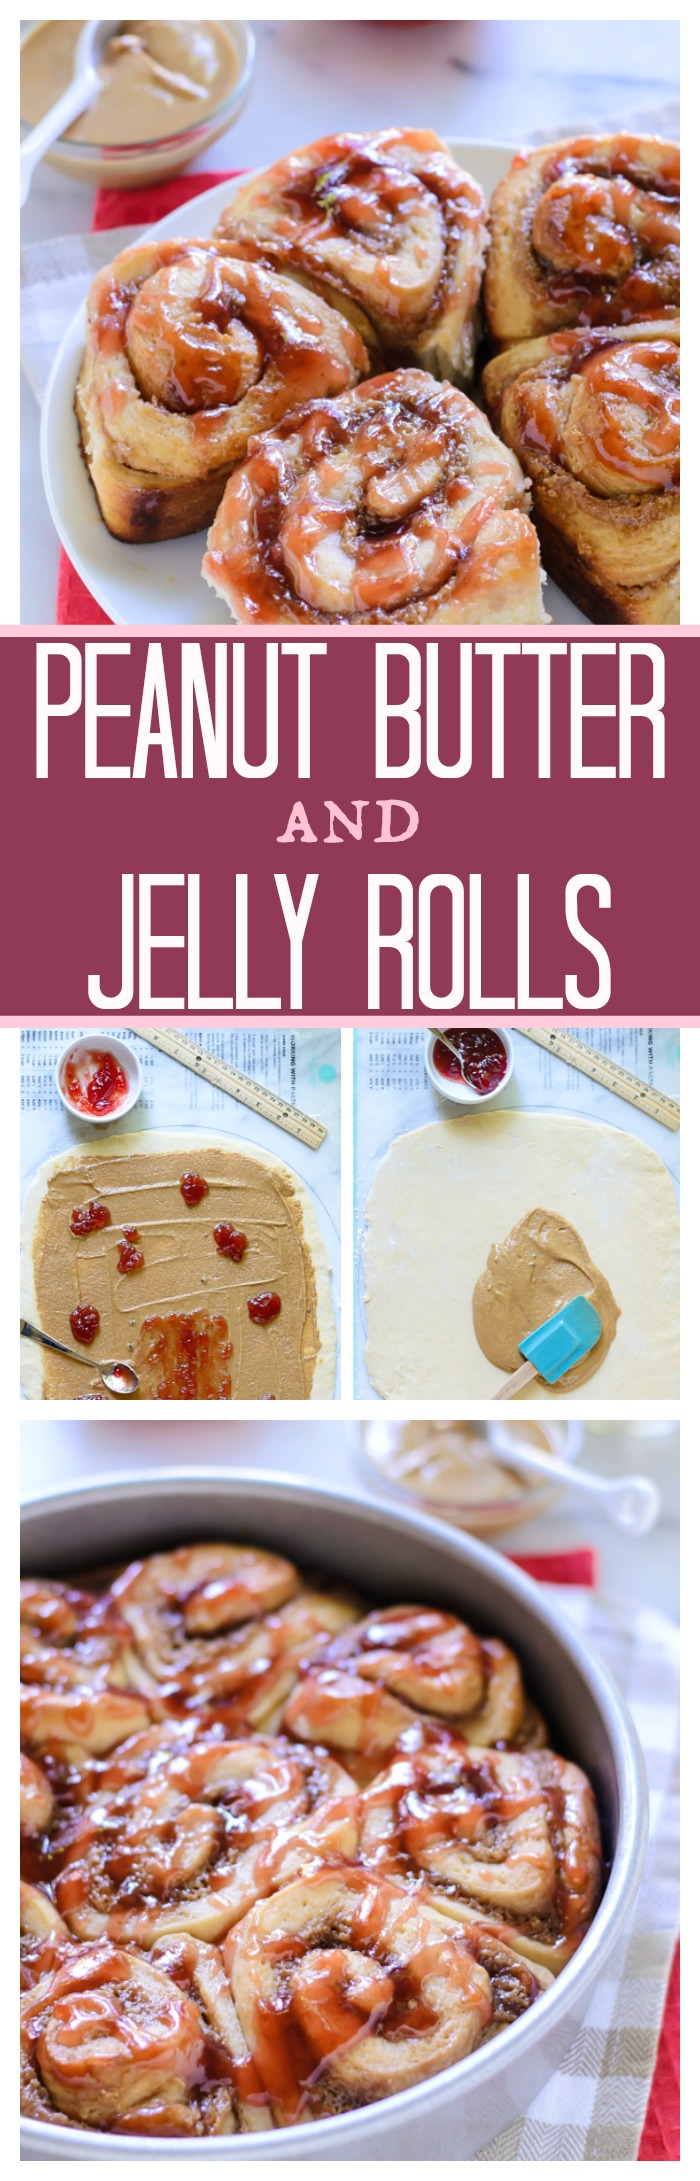 Peanut Butter and Jelly Rolls // Well-Plated